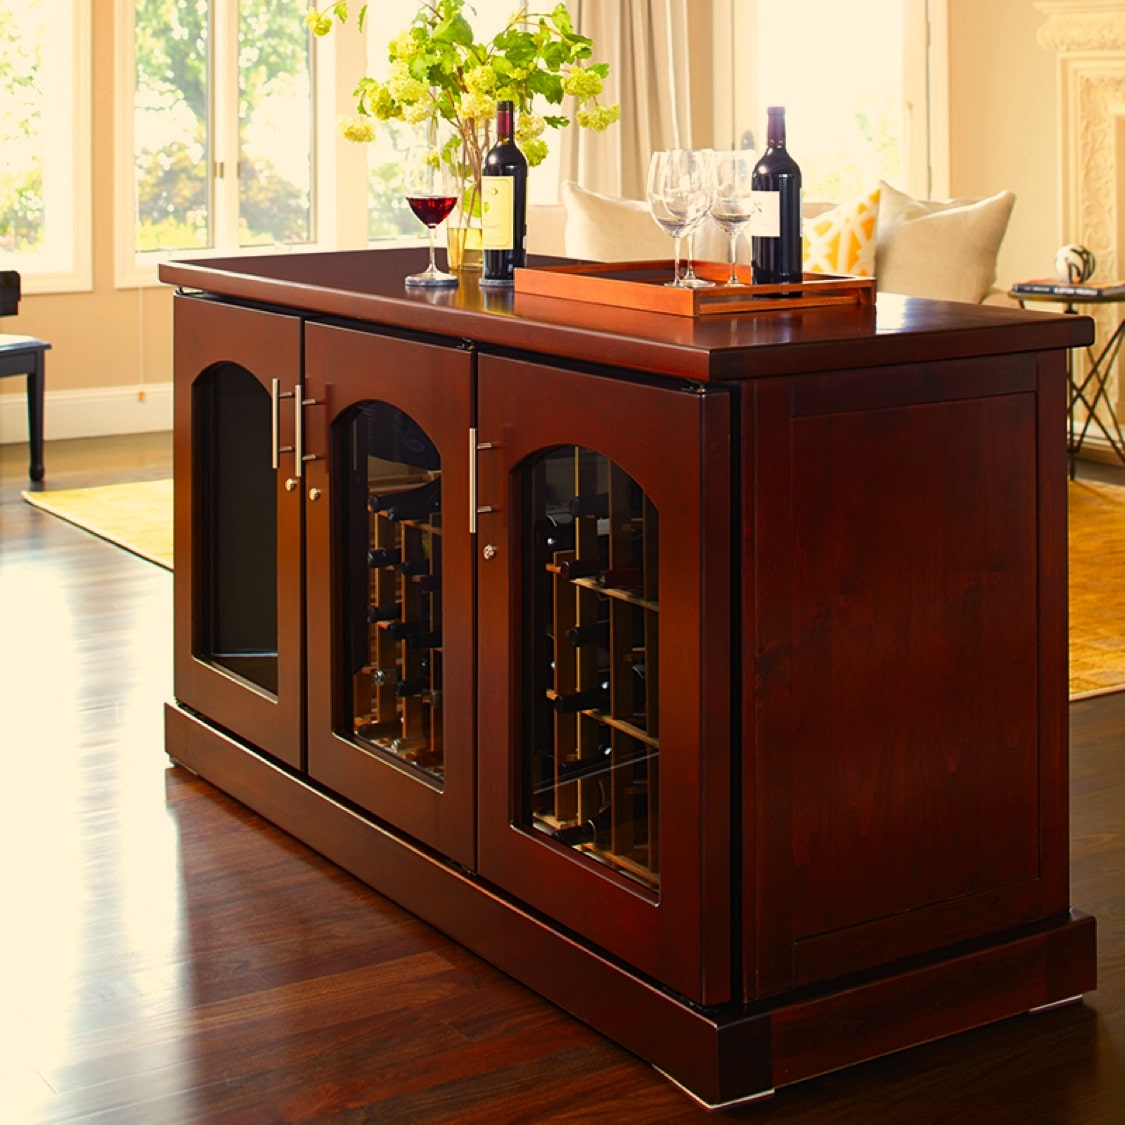 Click here to see more Credenza Wine Cabinets